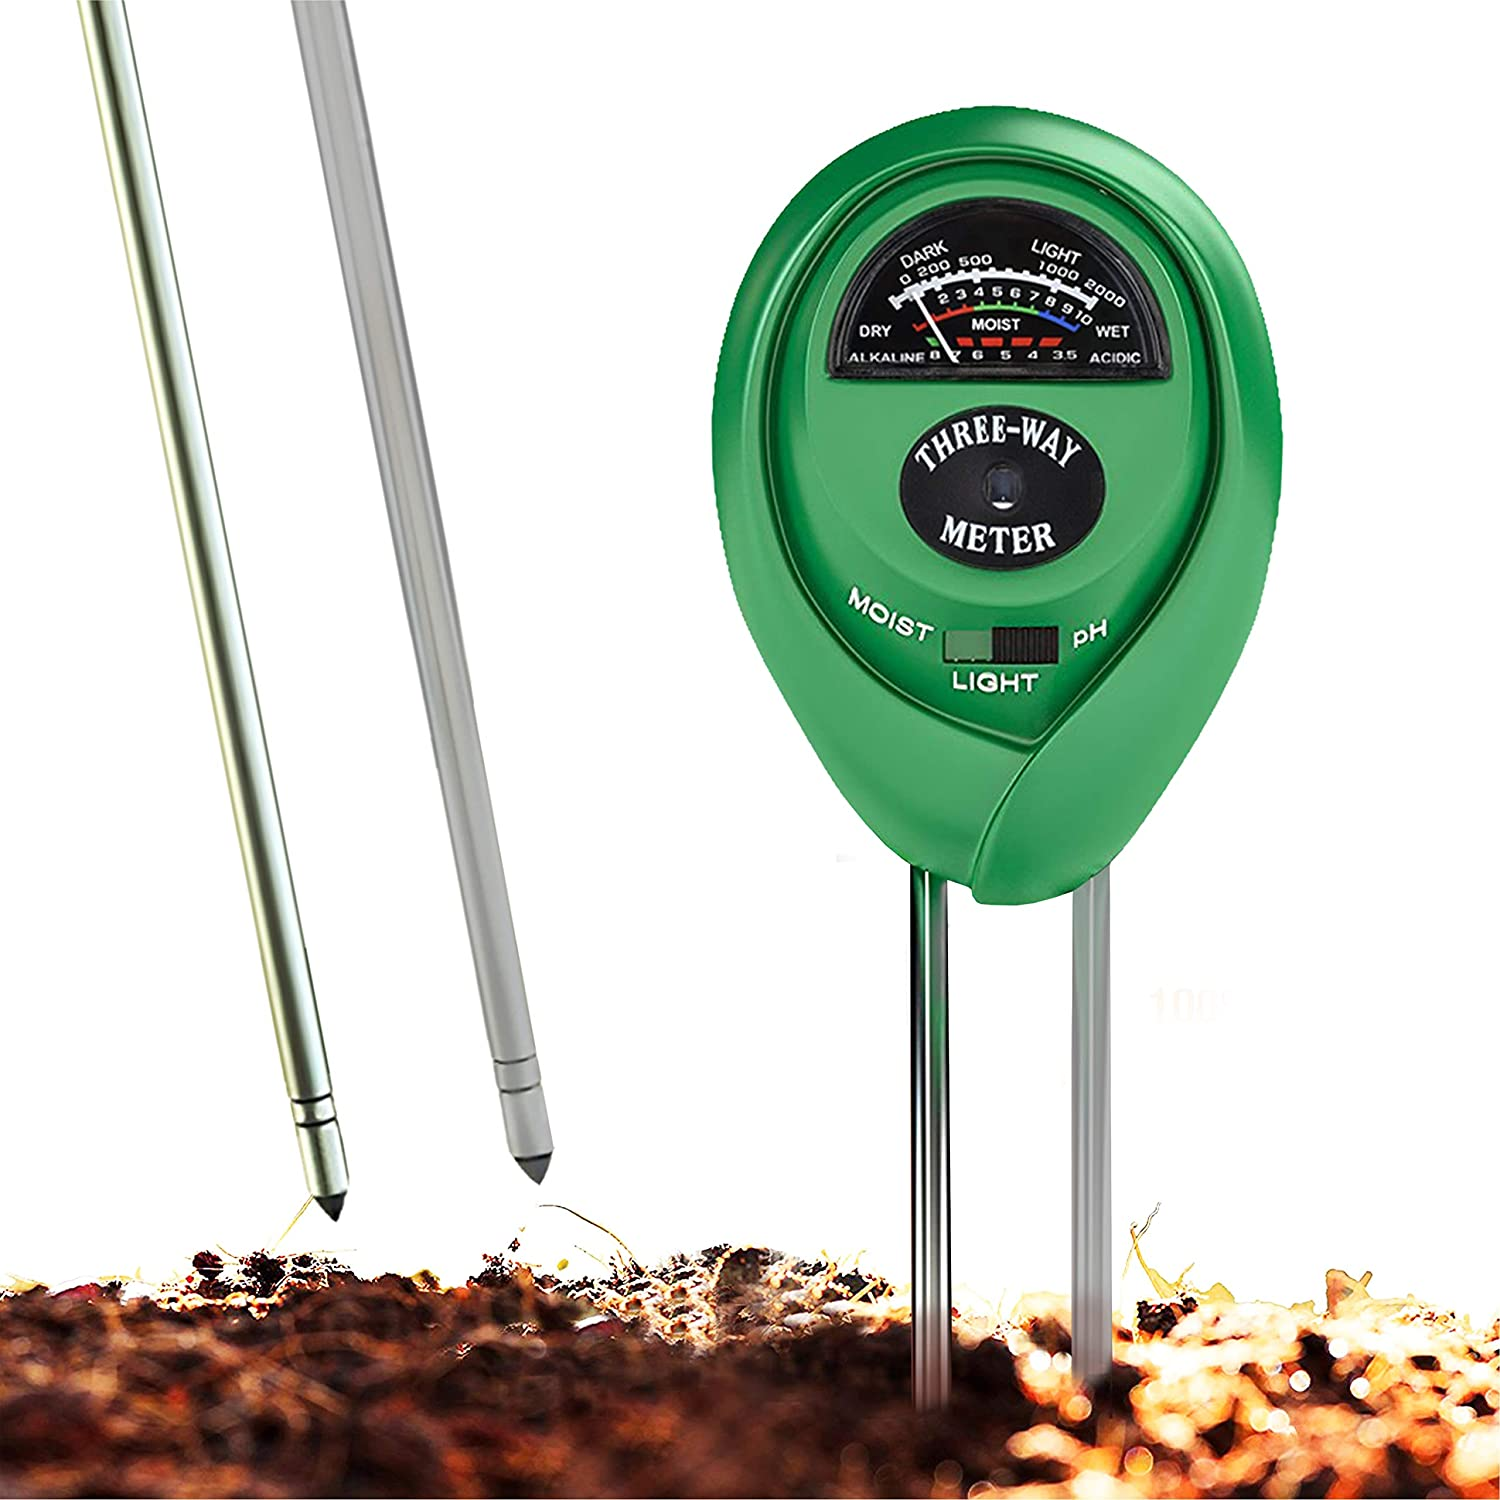 Soil pH Meter, 3-in-1 Soil Test Kit For Moisture, Light & pH, A Must Have For Home And Garden, Lawn, Farm, Plants, Herbs & Gardening Tools, Indoor/Outdoors Plant Care Soil Tester (No Battery Needed)